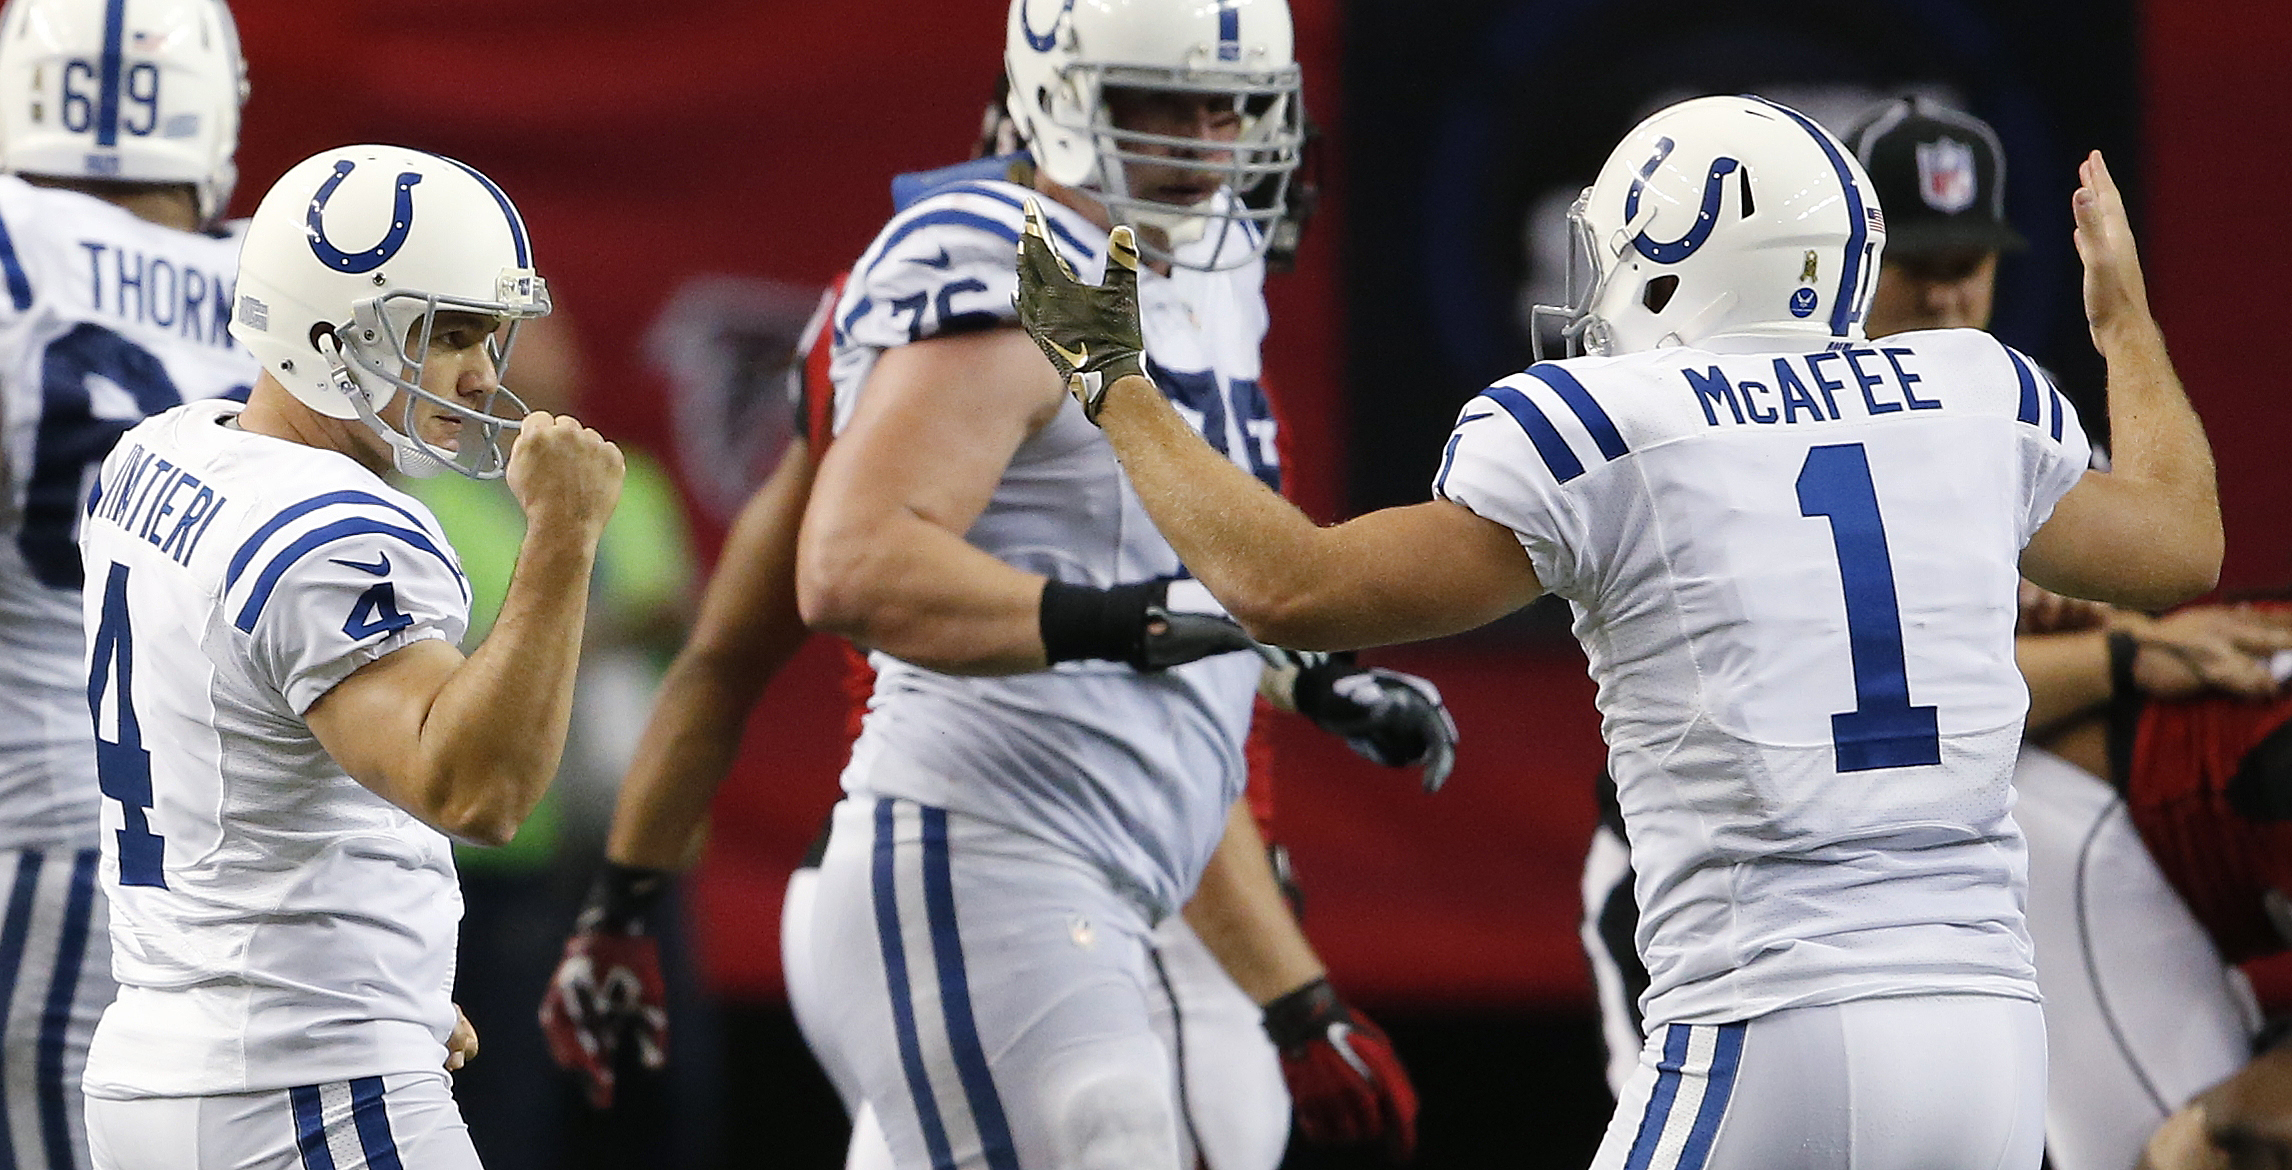 Indianapolis Colts punter Pat McAfee (1) celebrates the field goal of Indianapolis Colts kicker Adam Vinatieri (4) during the second half of an NFL football game against the Atlanta Falcons, Sunday, Nov. 22, 2015, in Atlanta. (AP Photo/John Bazemore)